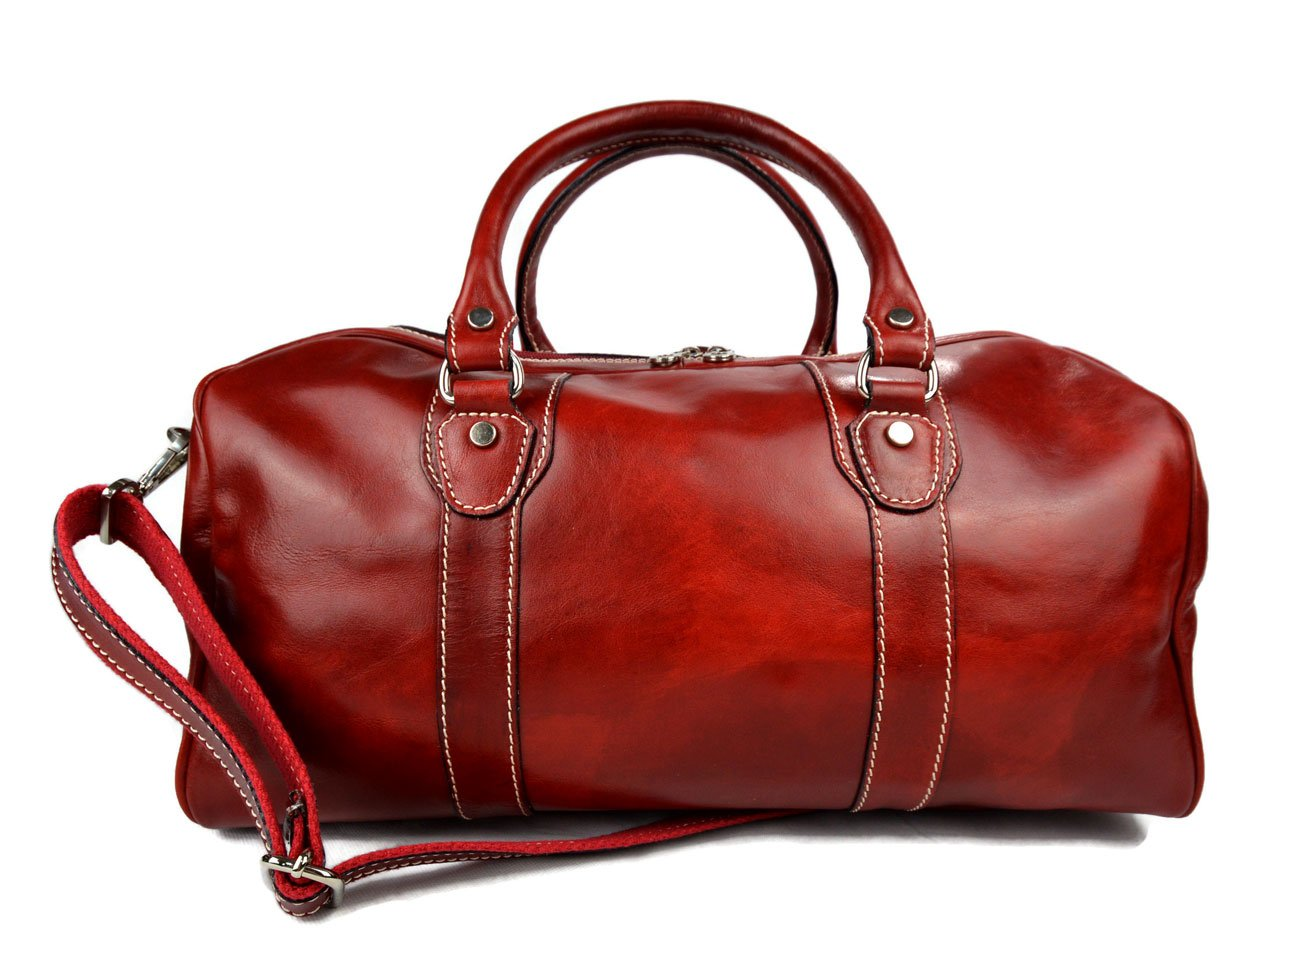 Leather duffle bag genuine leather travel bag overnight bag for men and women weekender leather bag cabin leather bag made in Italy red